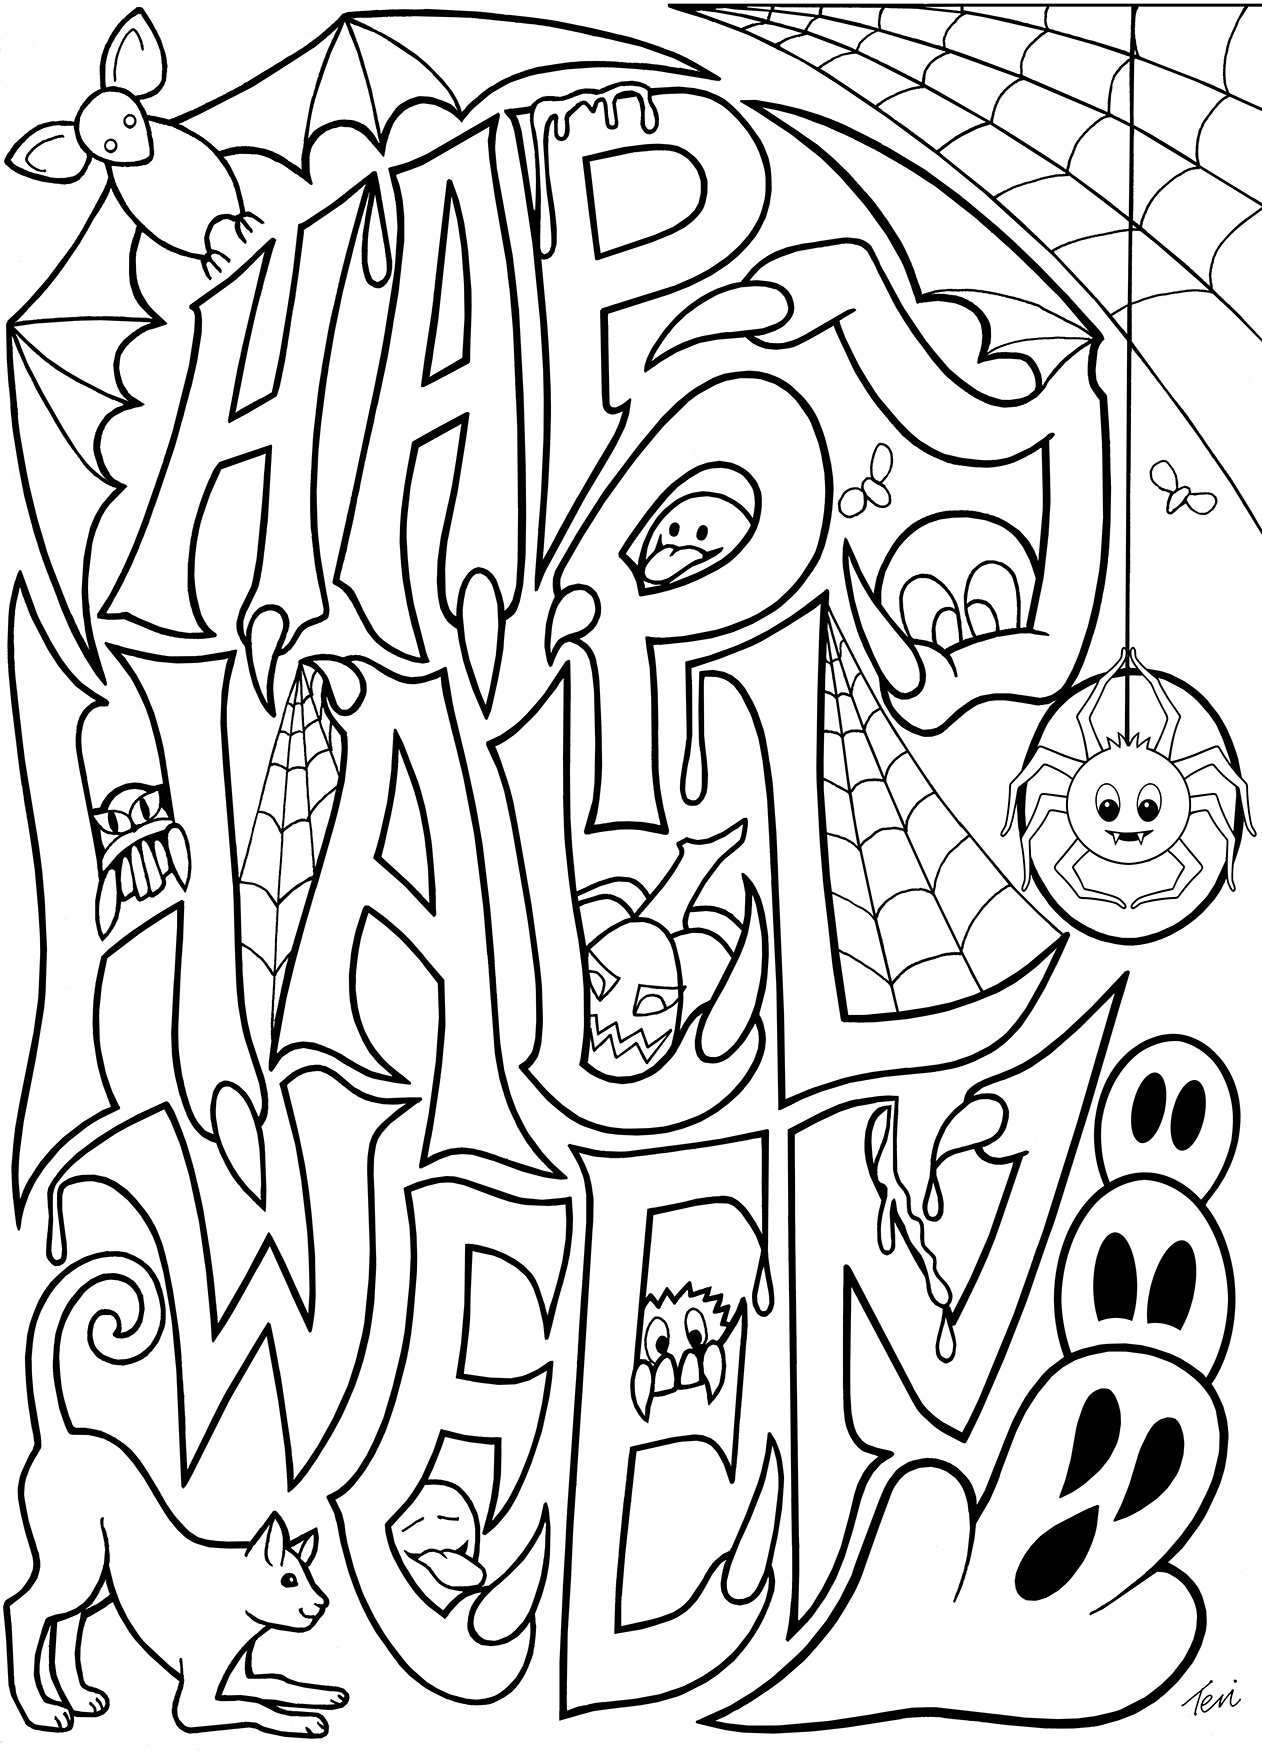 free pumpkin coloring pages - happy halloween coloring pictures happy halloween coloring pages for kids pumpkin printables free